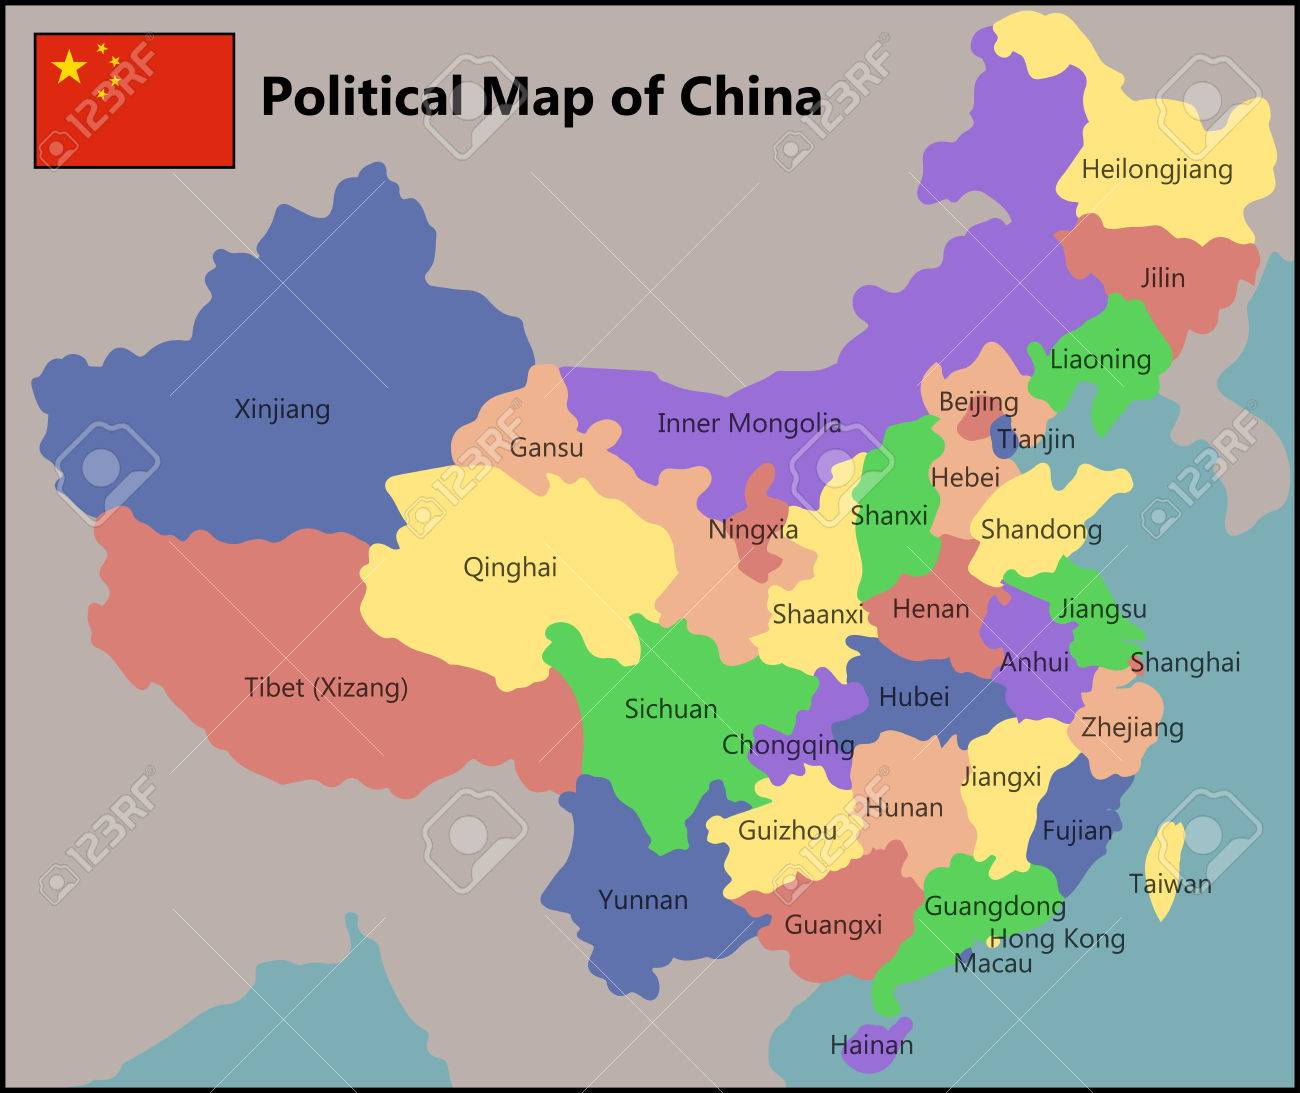 Political Map Of China Political Map Of China Royalty Free Cliparts, Vectors, And Stock